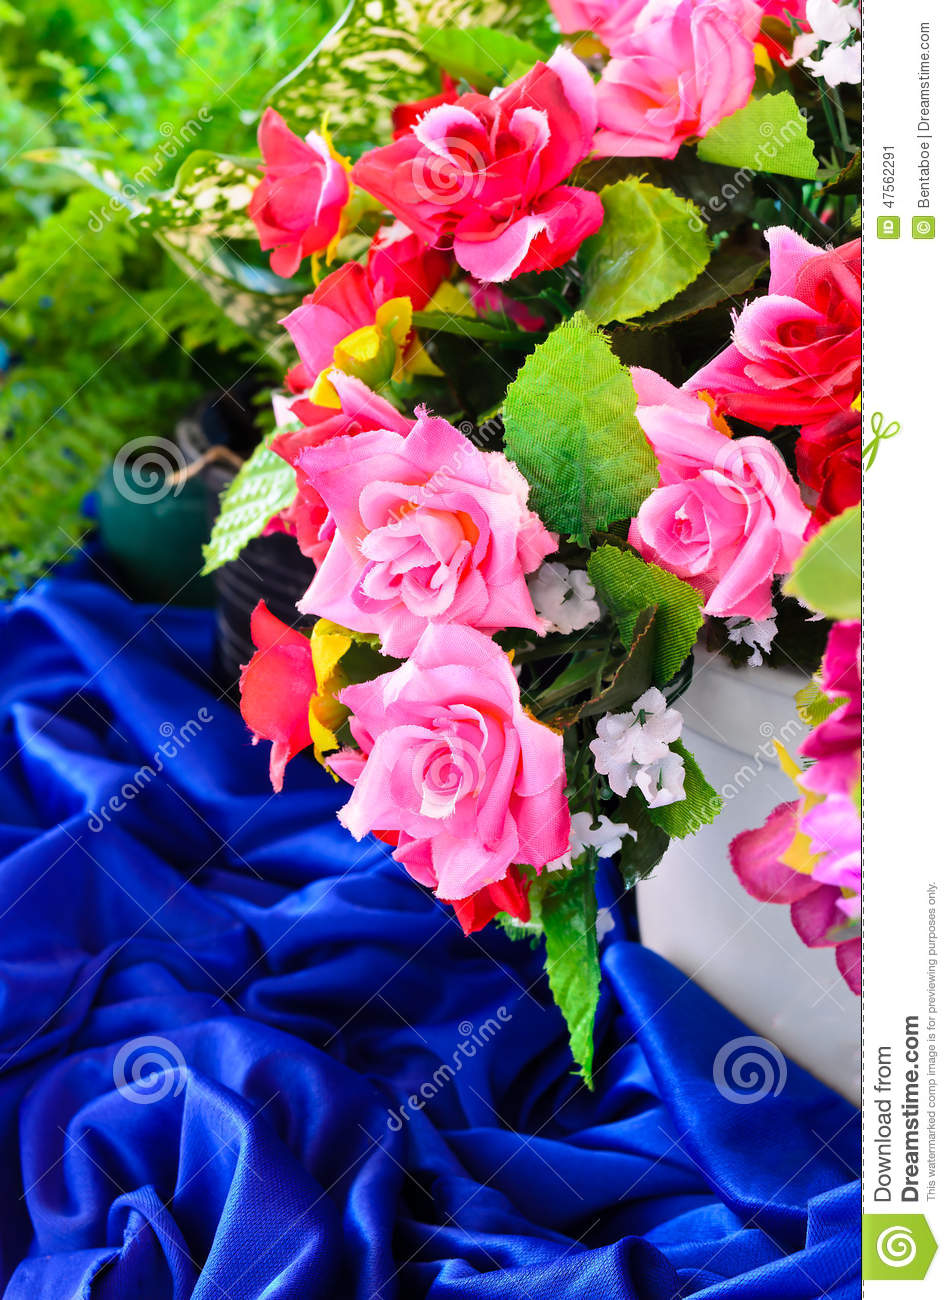 Artificial rose flowers decoration stock image image of for Artificial plants for interior decoration